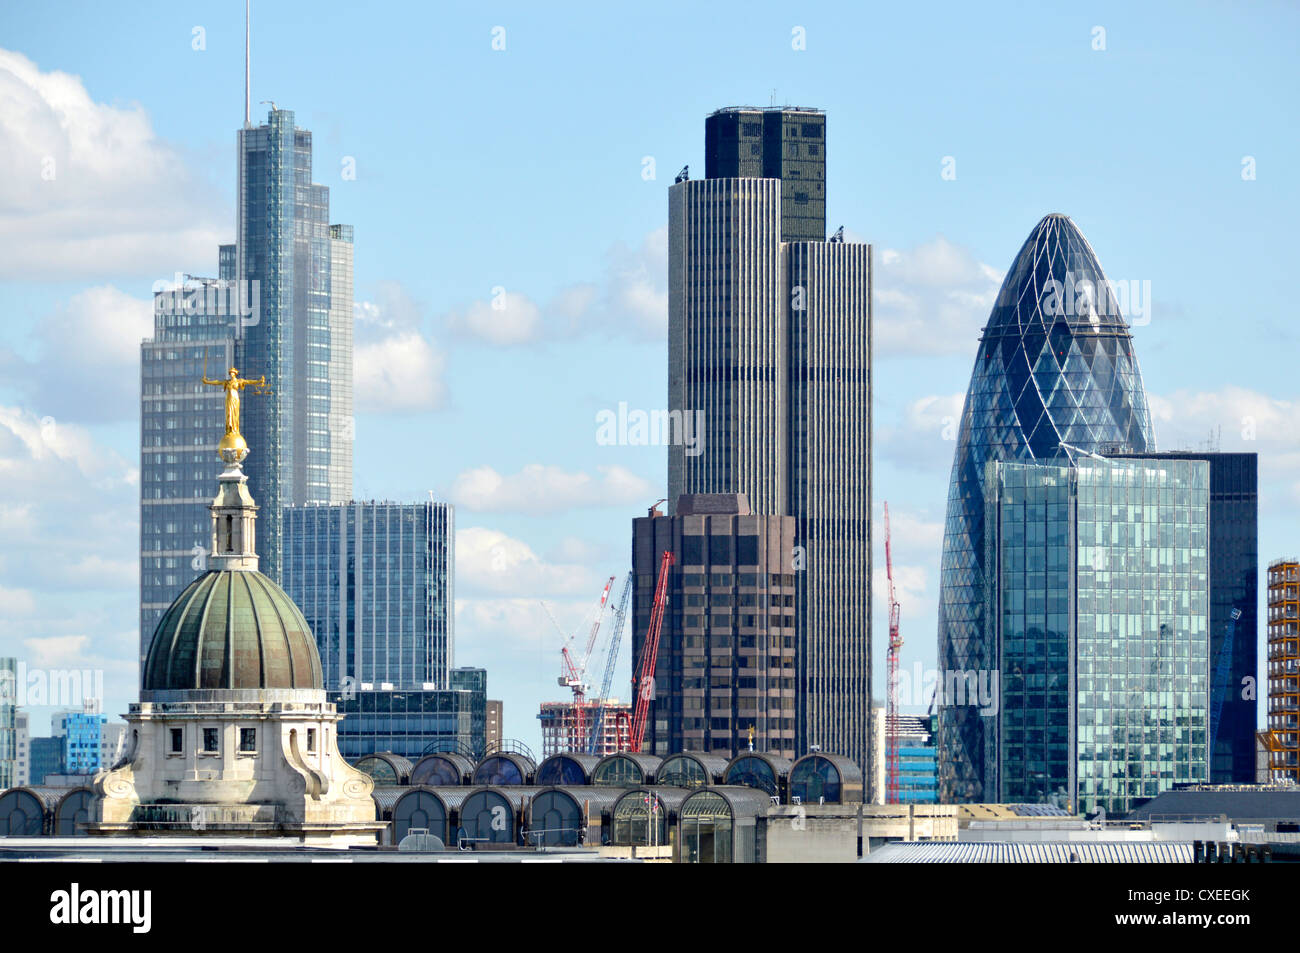 city of london skyline buildings including heron tower. Black Bedroom Furniture Sets. Home Design Ideas